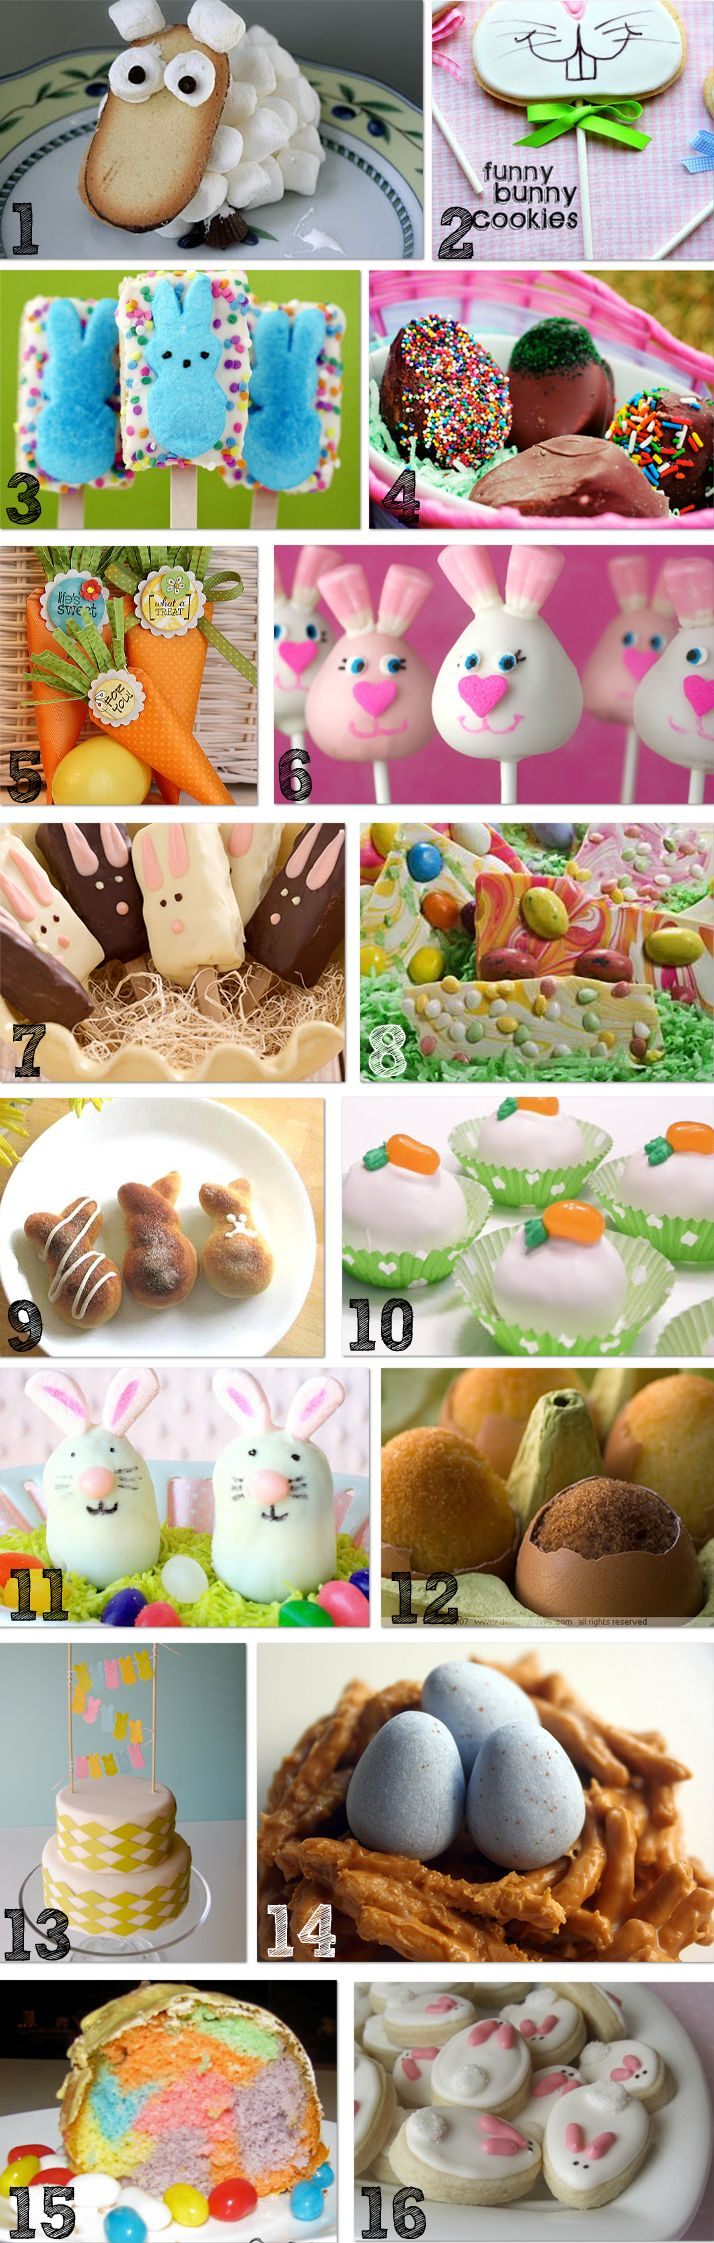 15 yummy Easter treats! Easter